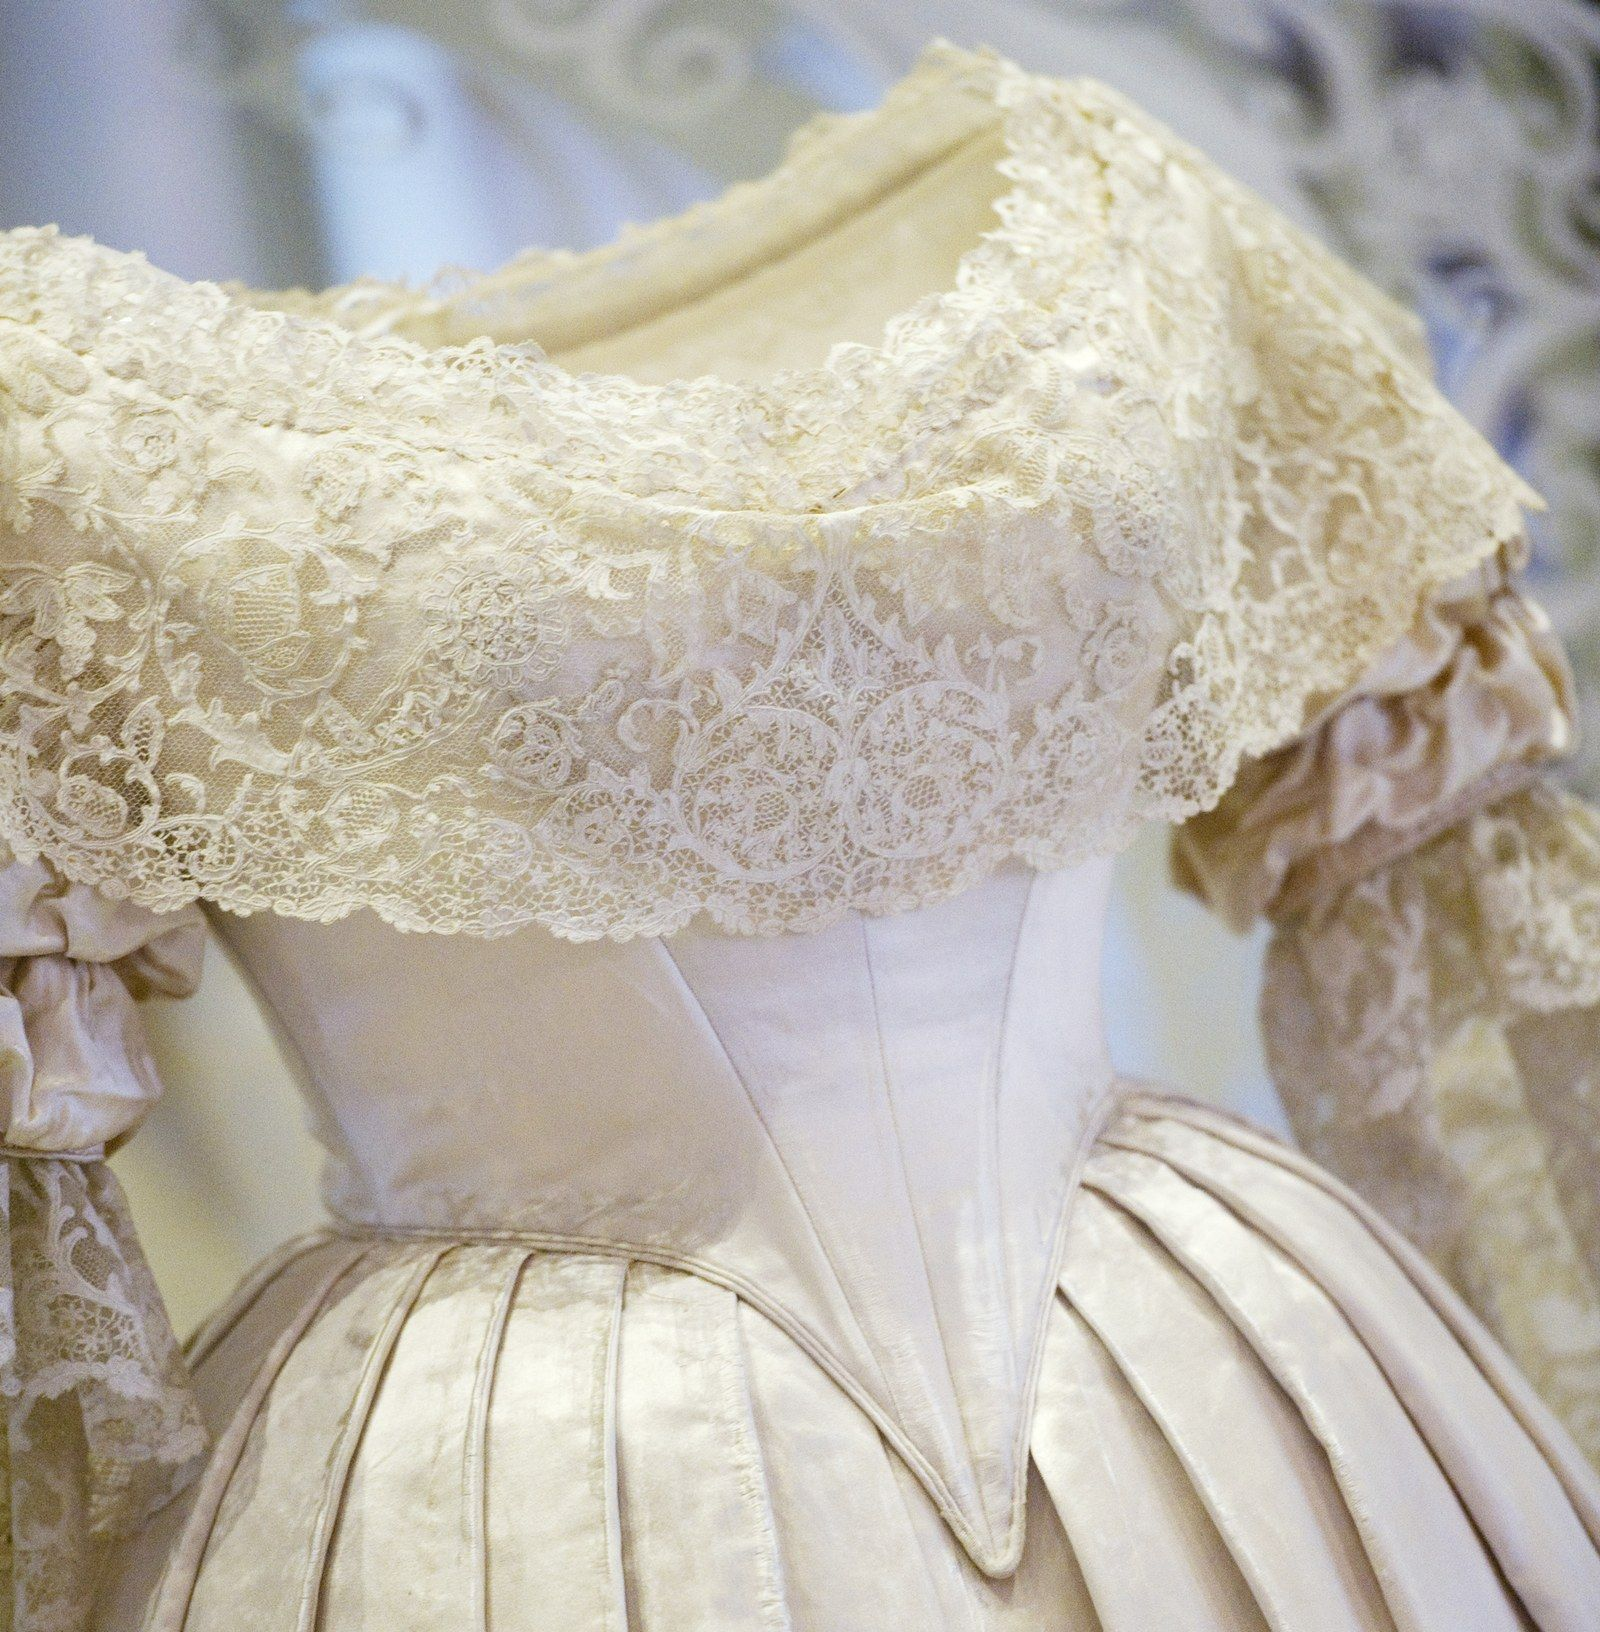 Queen Victoria Made White Wedding Dresses Popular Here S What Else You Should Know About Her Royal Wedding Queen Victoria Wedding Dress Queen Victoria Dress Victoria Fashion [ 1632 x 1600 Pixel ]